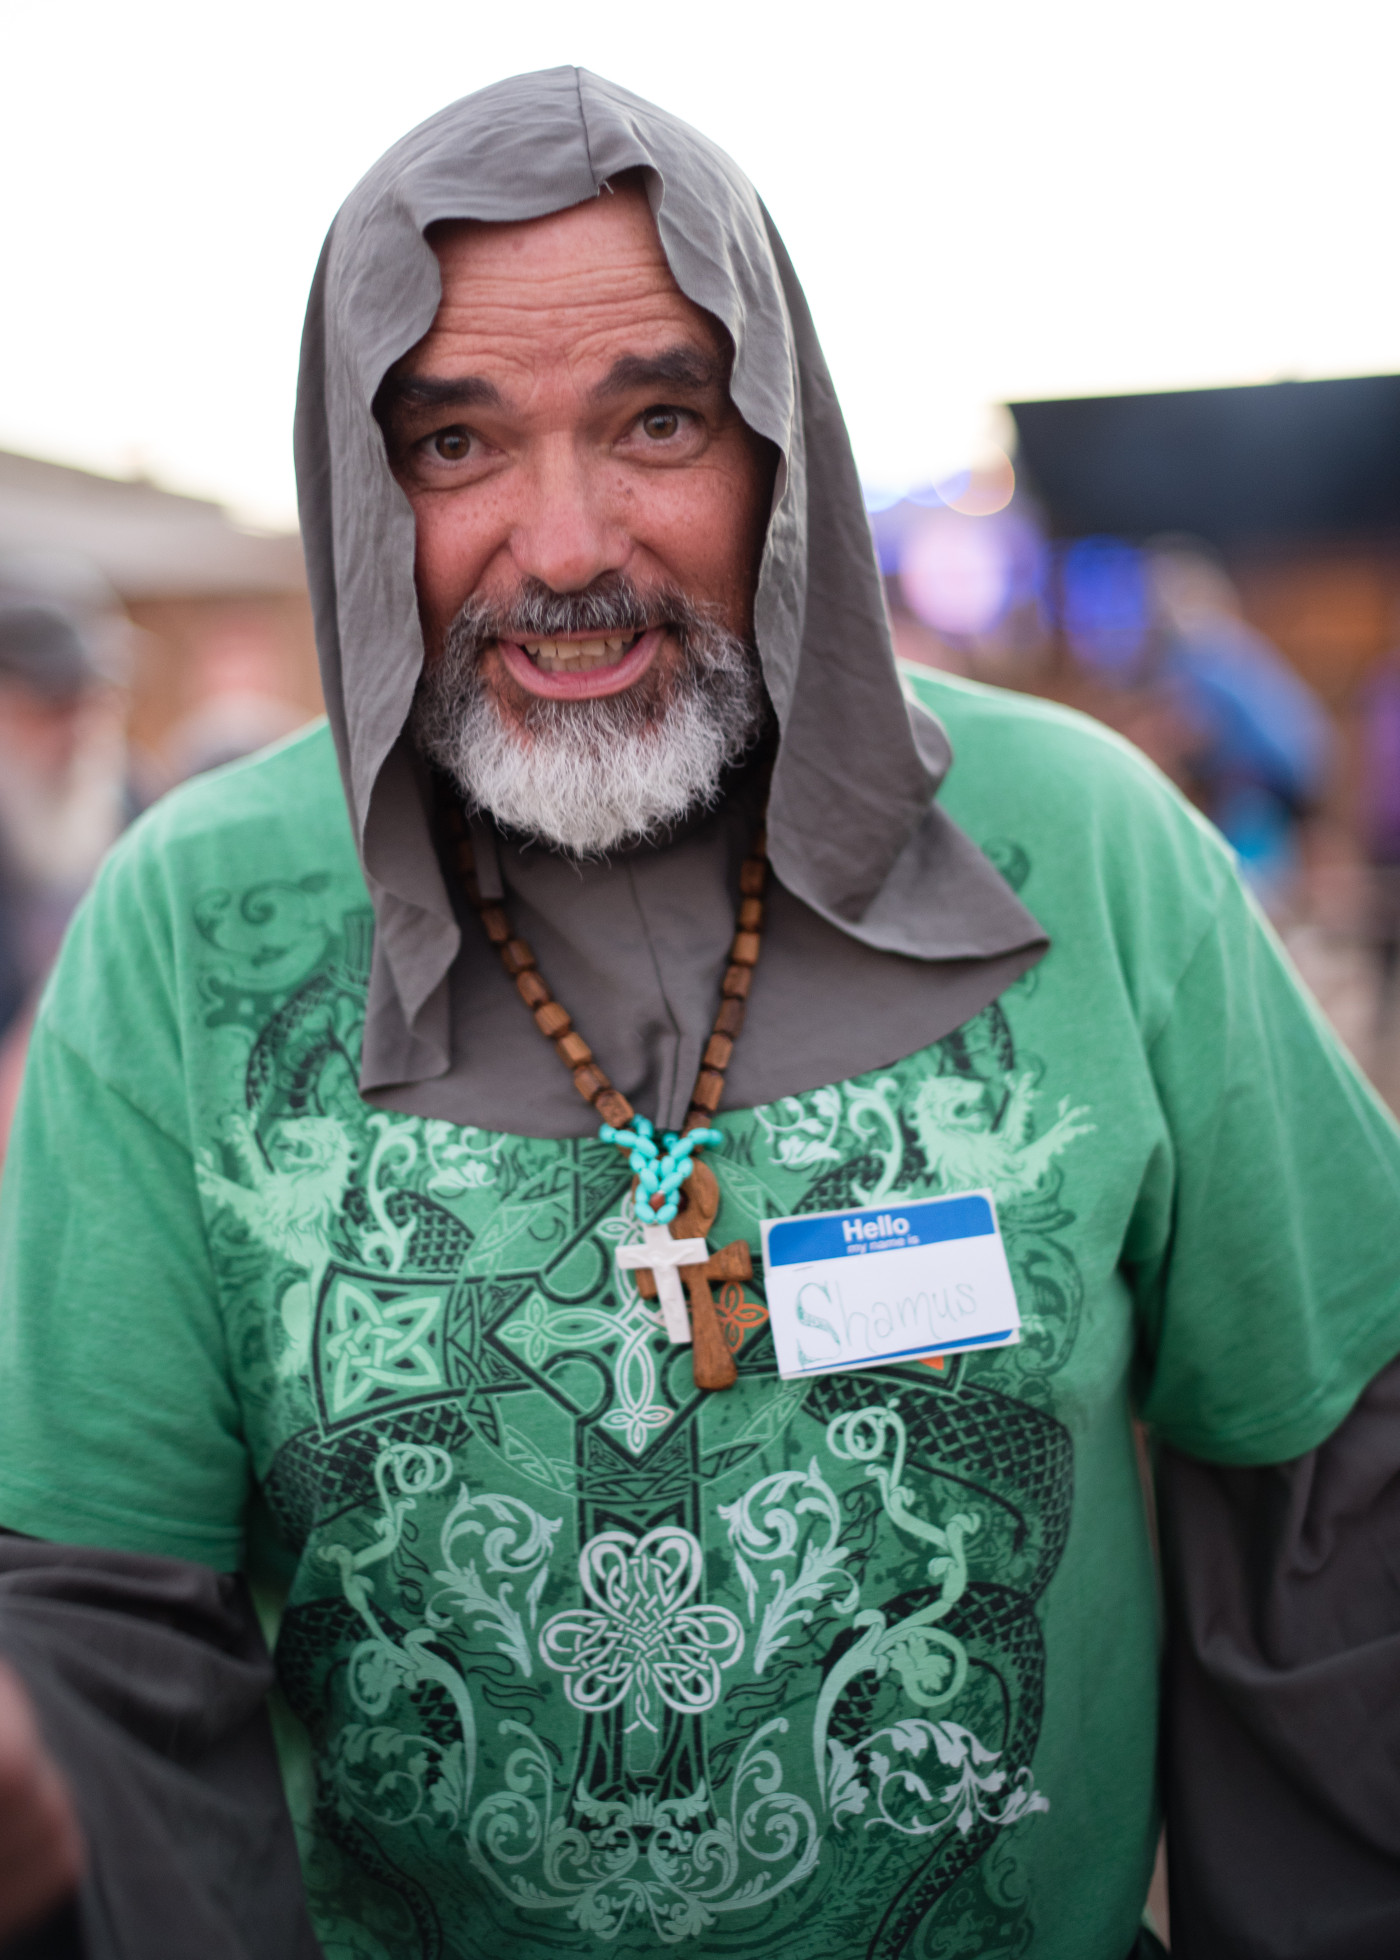 images/Campout 14 at Pappy and Harriets/Kit Hickman Irish Monk